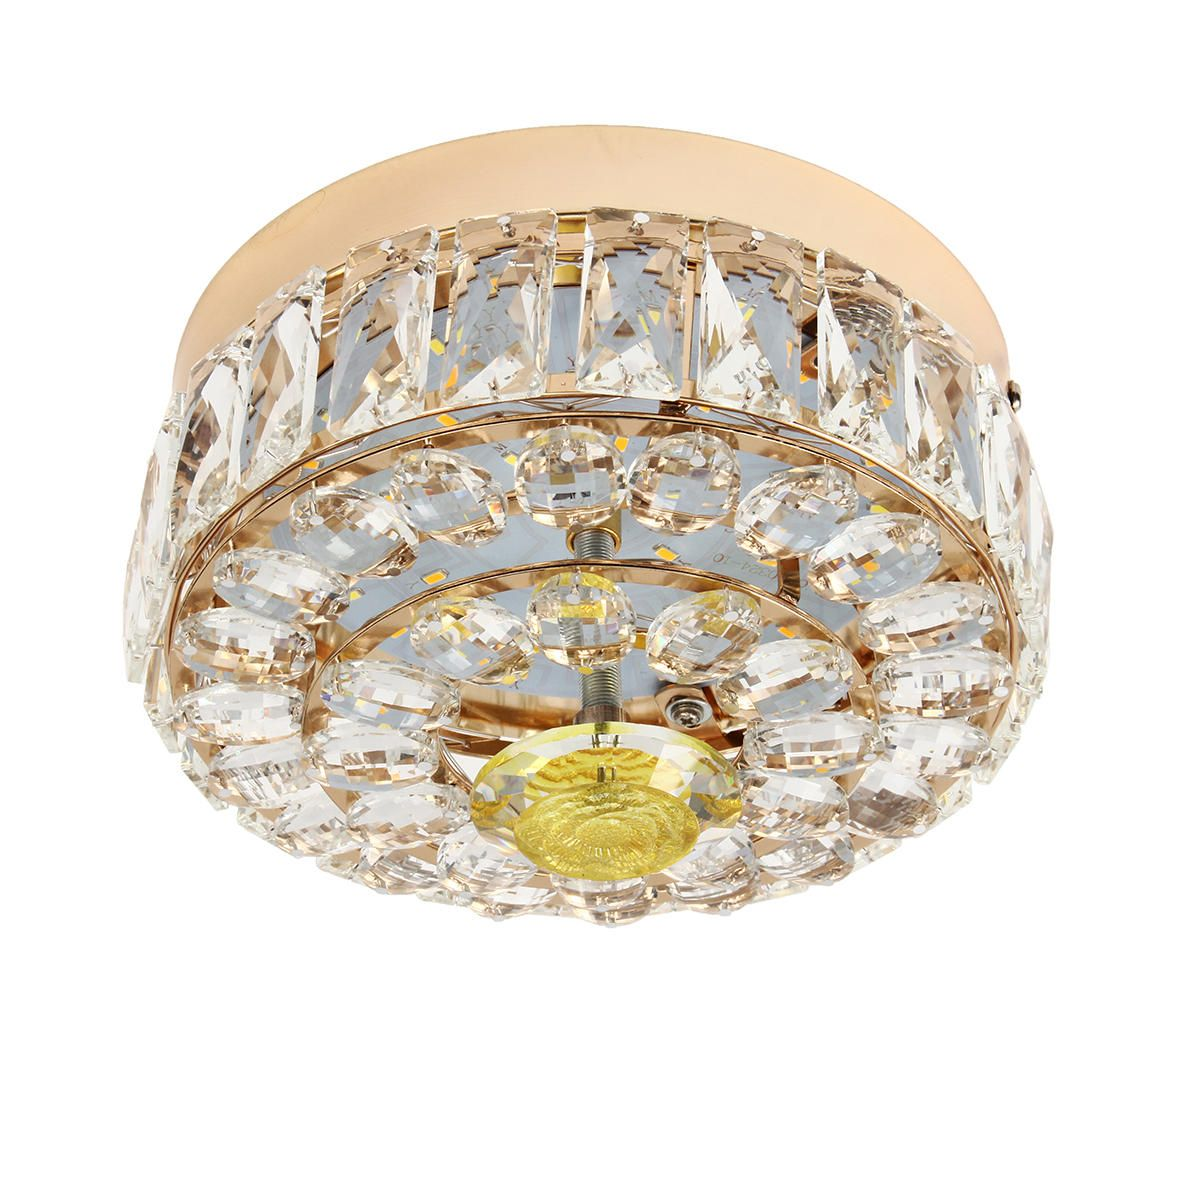 MEJ US$47.19 Modern Gold Round Crystal Ceiling Chandelier Light Pendant Fixture Home Decor